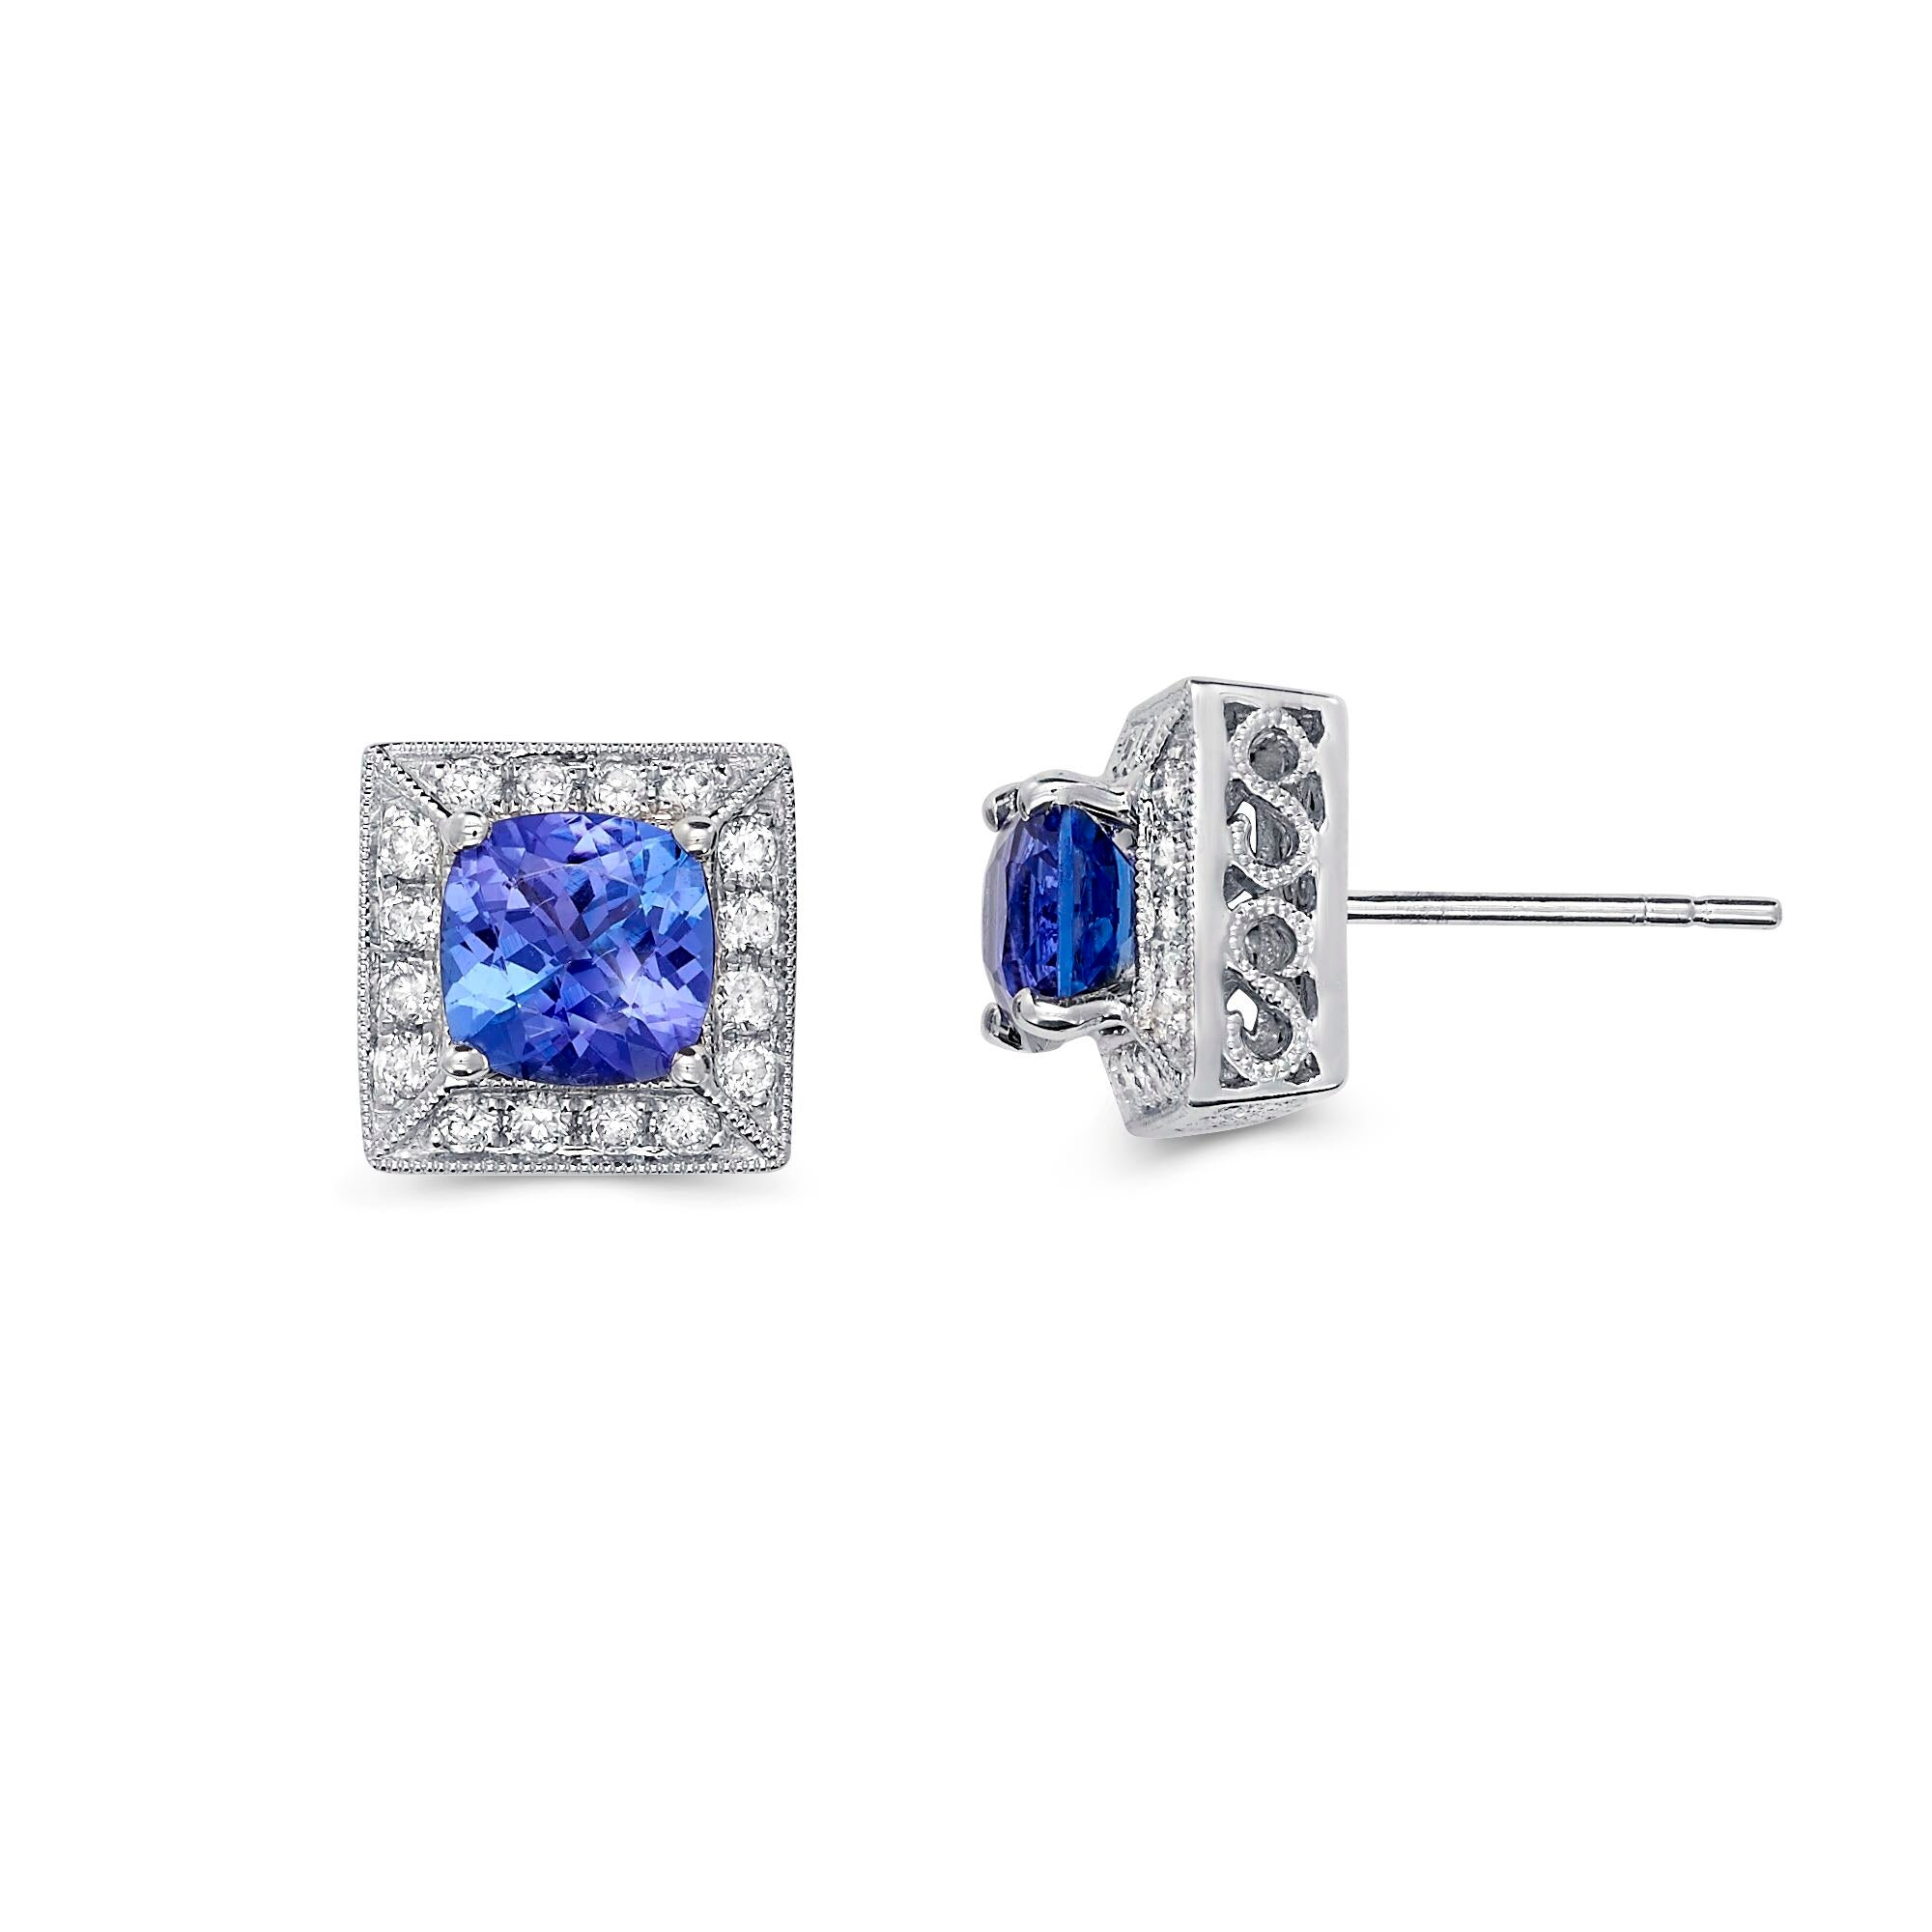 jewelry earrings cttw color mar products gold set ct stud collections vir tanzanite martini white